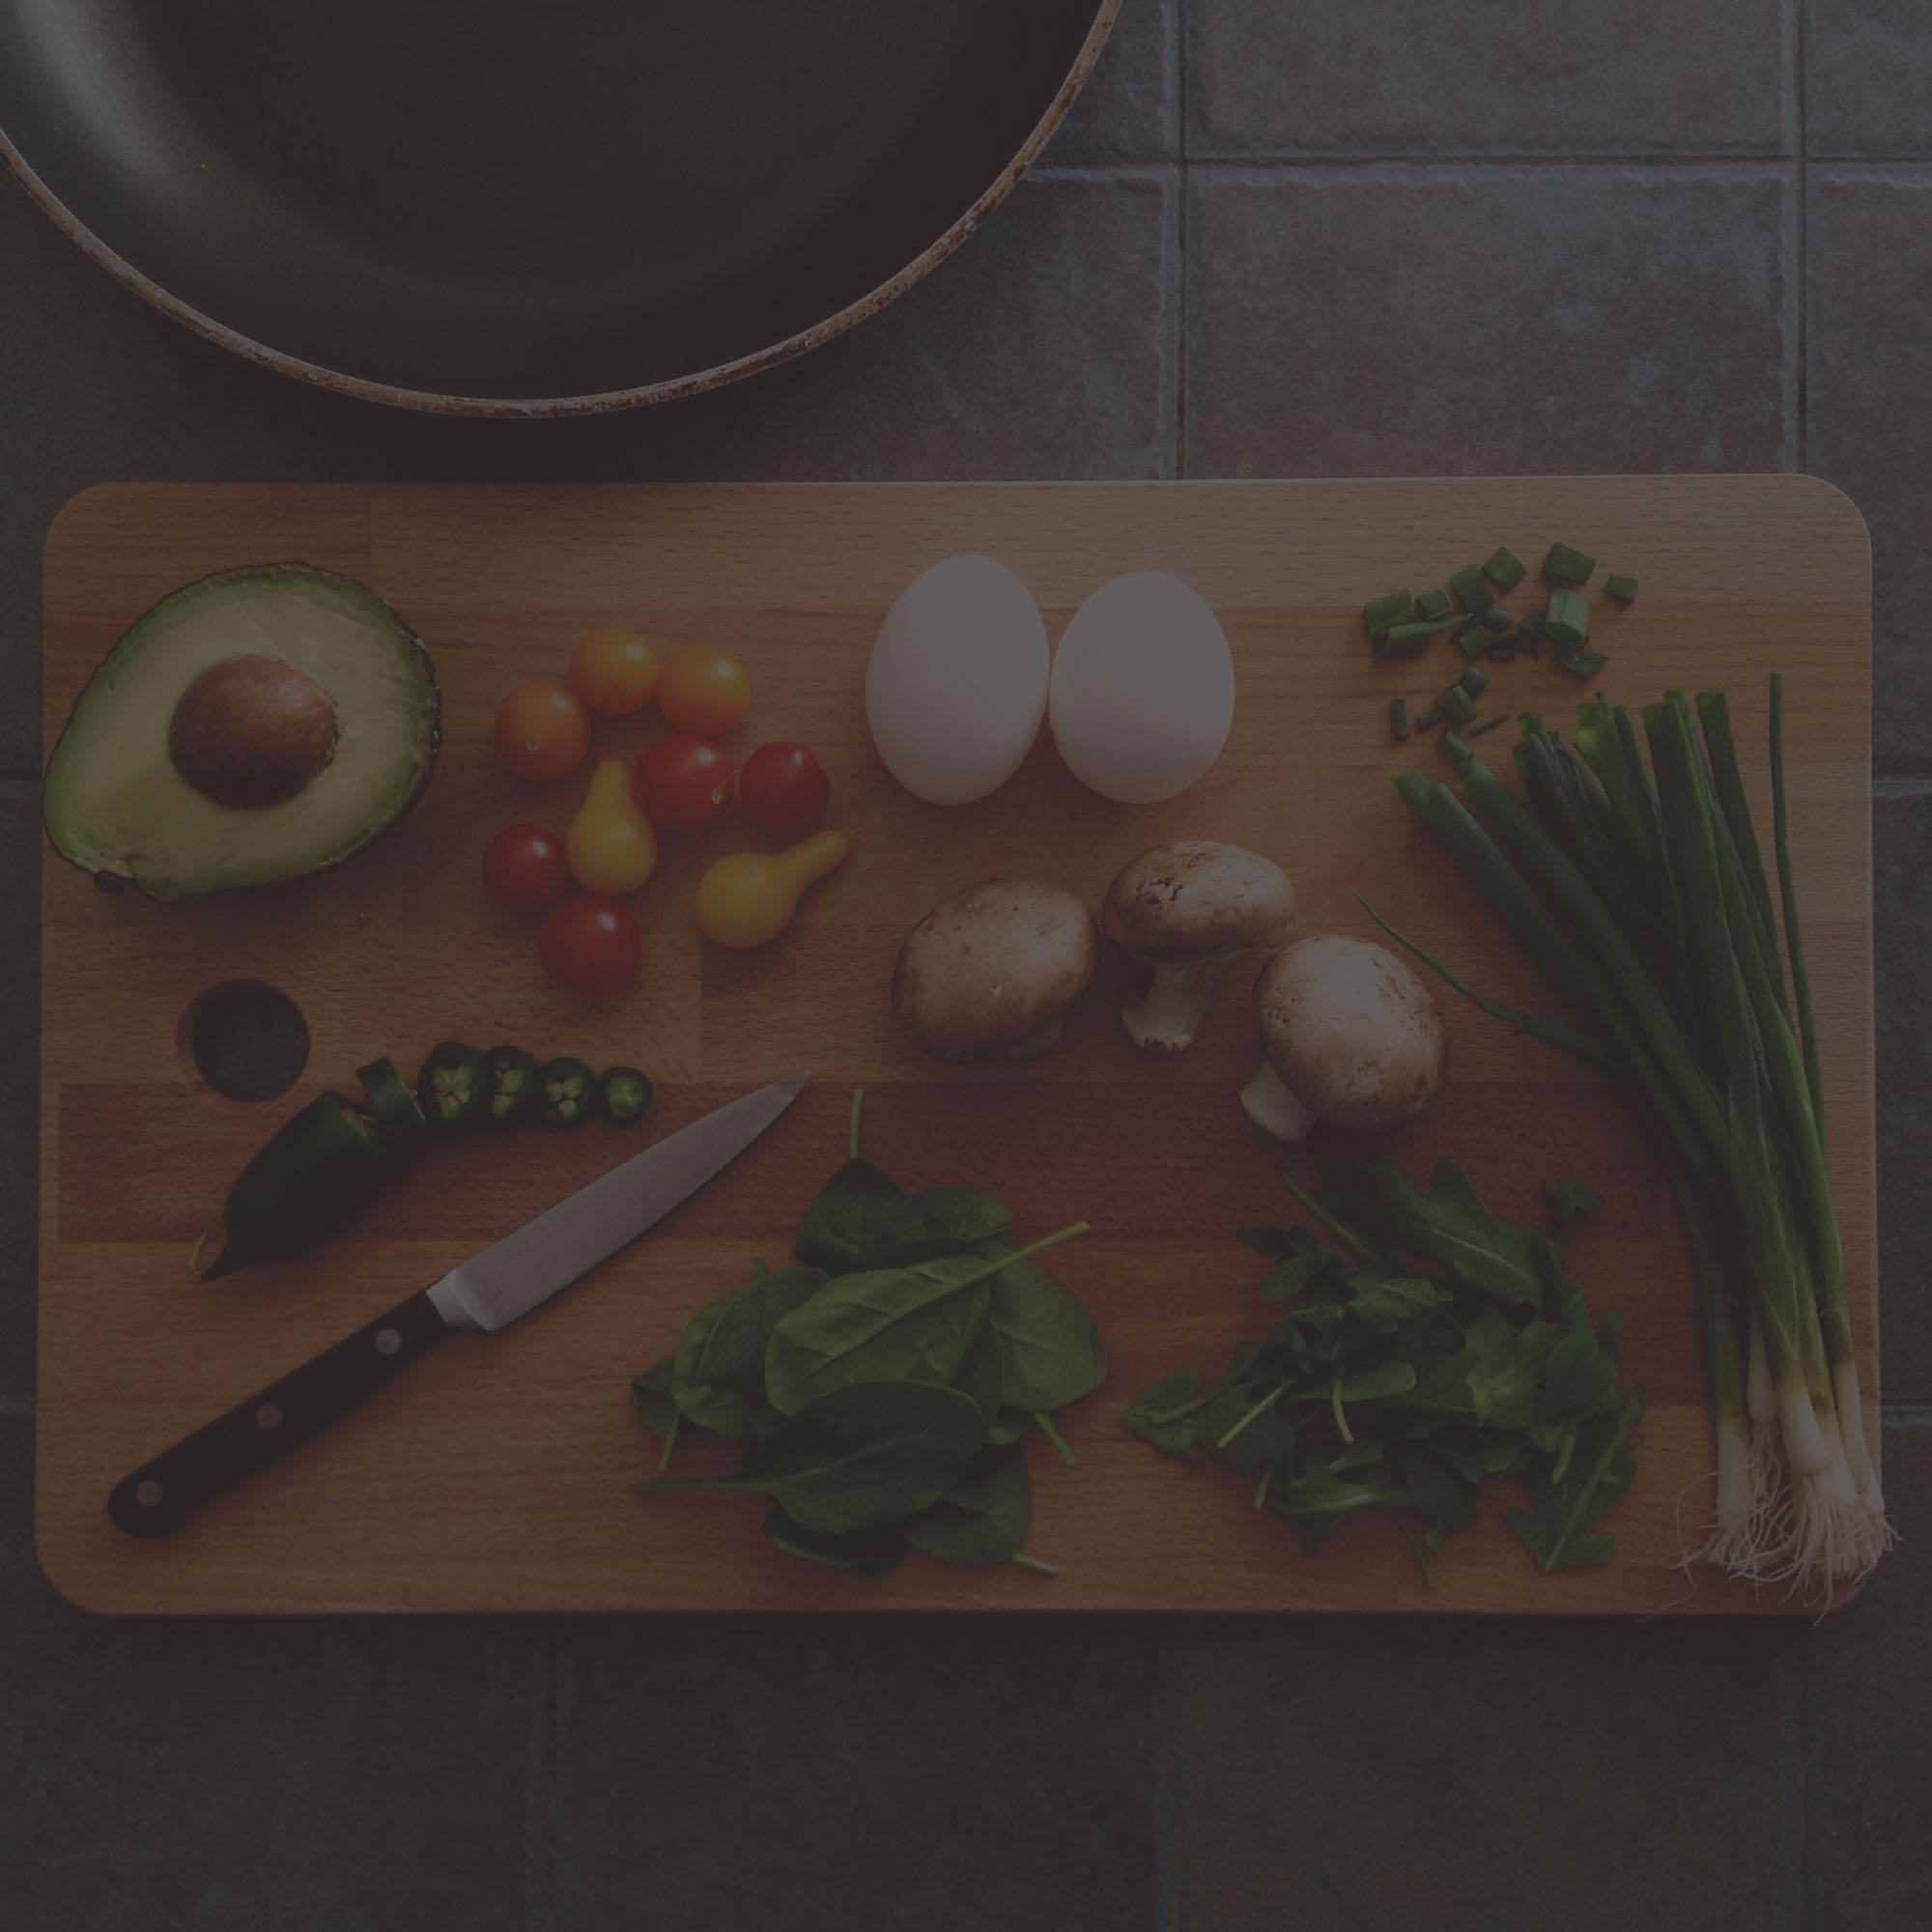 How to Sleep Better Guides. healthy food on cutting board